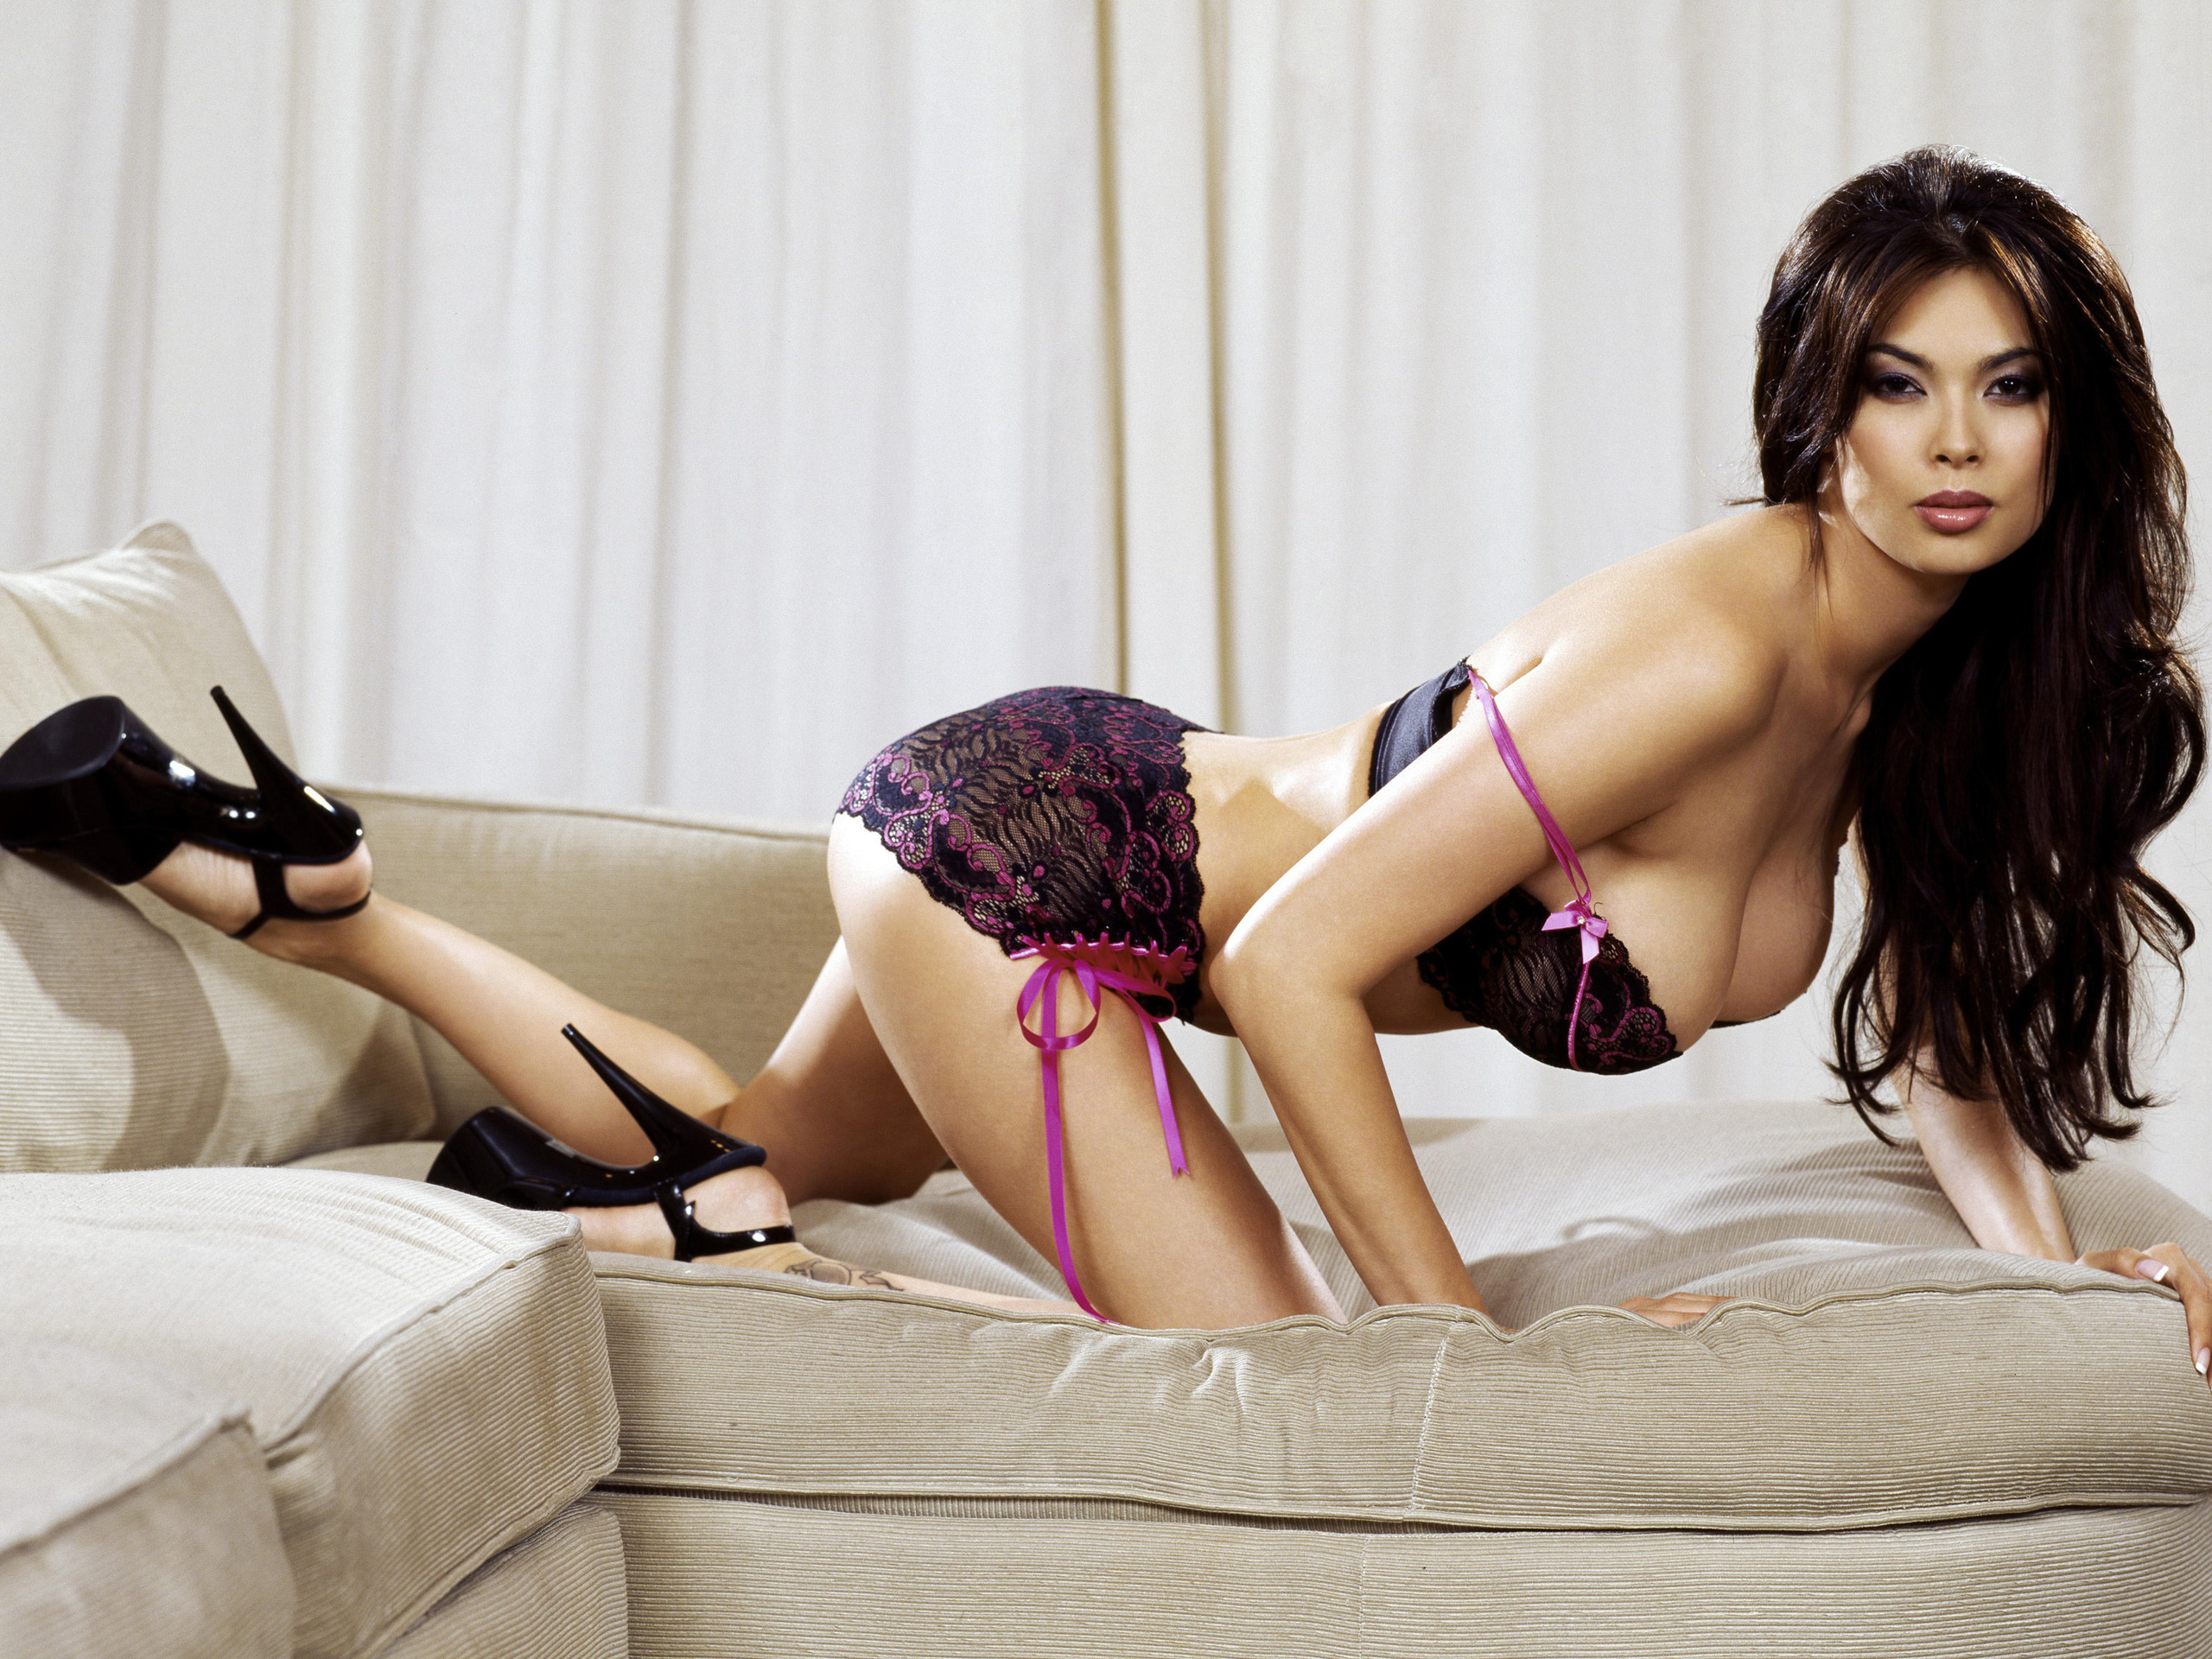 Foxy Savannah Stern shows off her hot ass in lingerie and high heels. № 242068 бесплатно